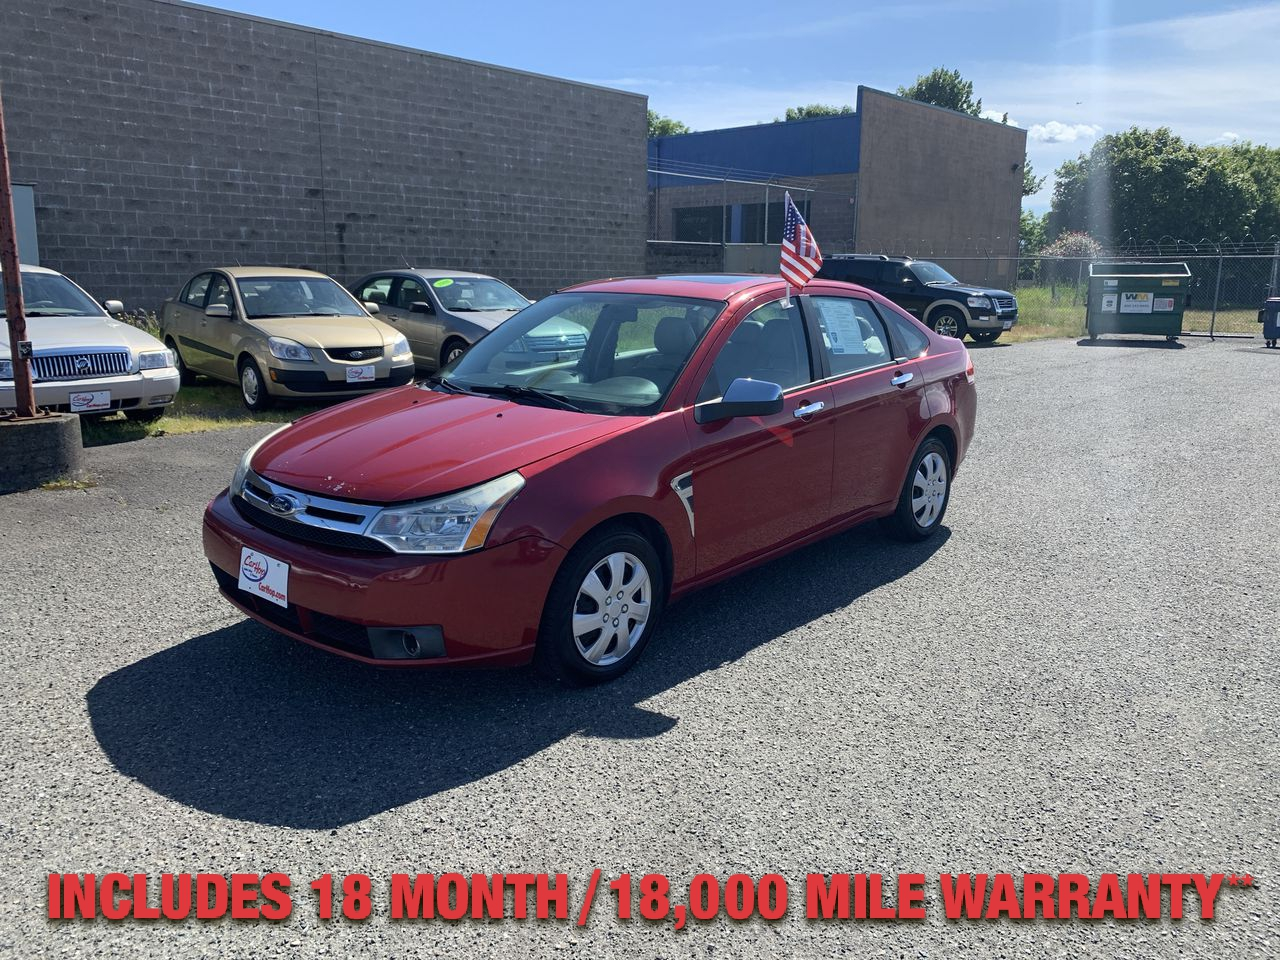 Pre-Owned 2009 FORD FOCUS SEL Sedan